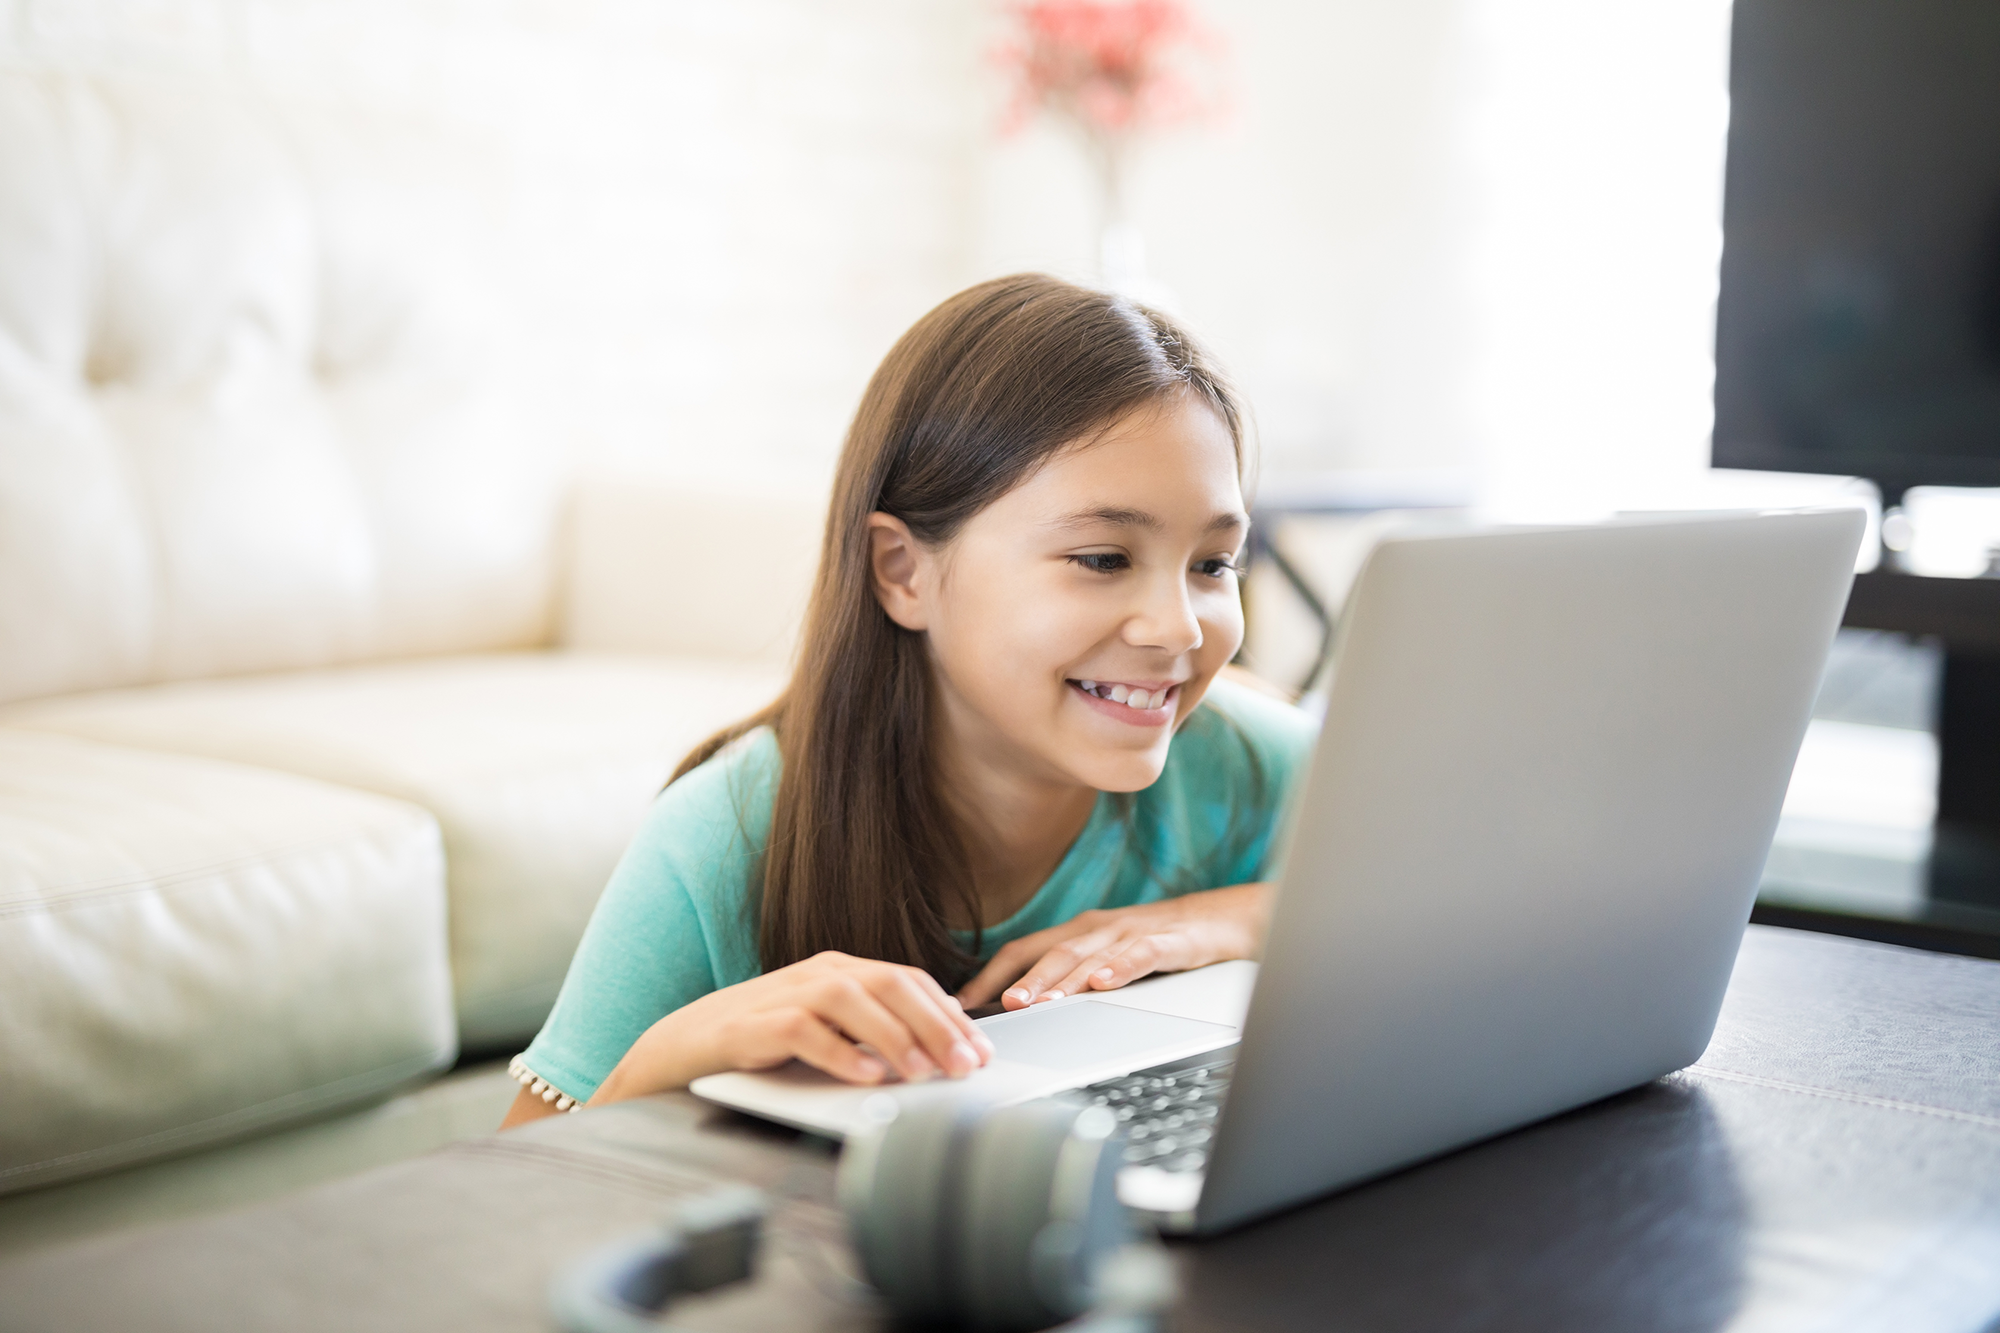 A young girl sits at a computer smiling.